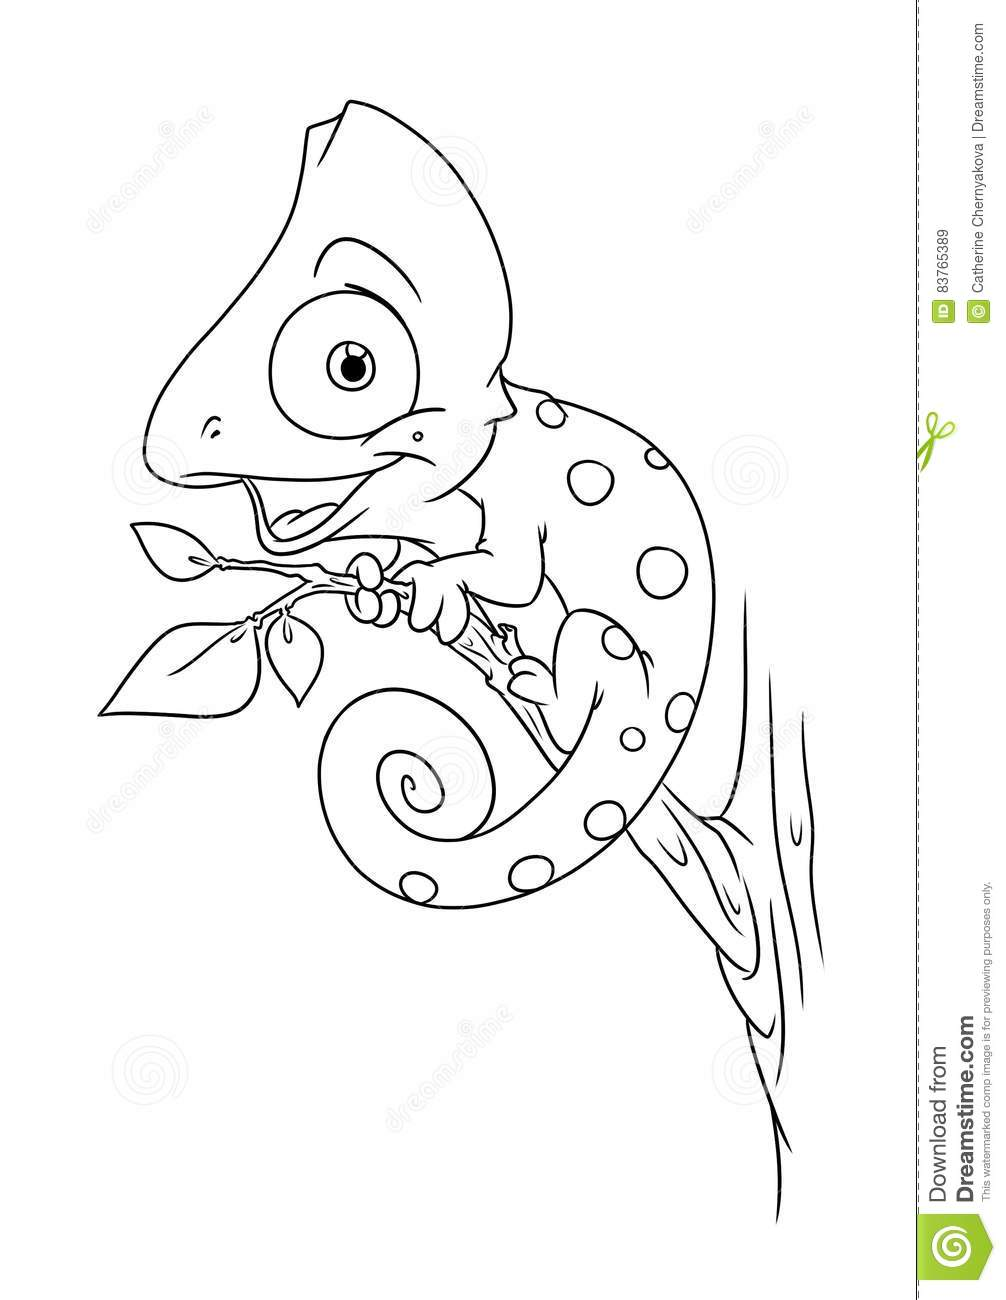 Chameleon Animal Coloring Pages Cartoon Stock Illustration Illustration Of Coloring Color 83765389